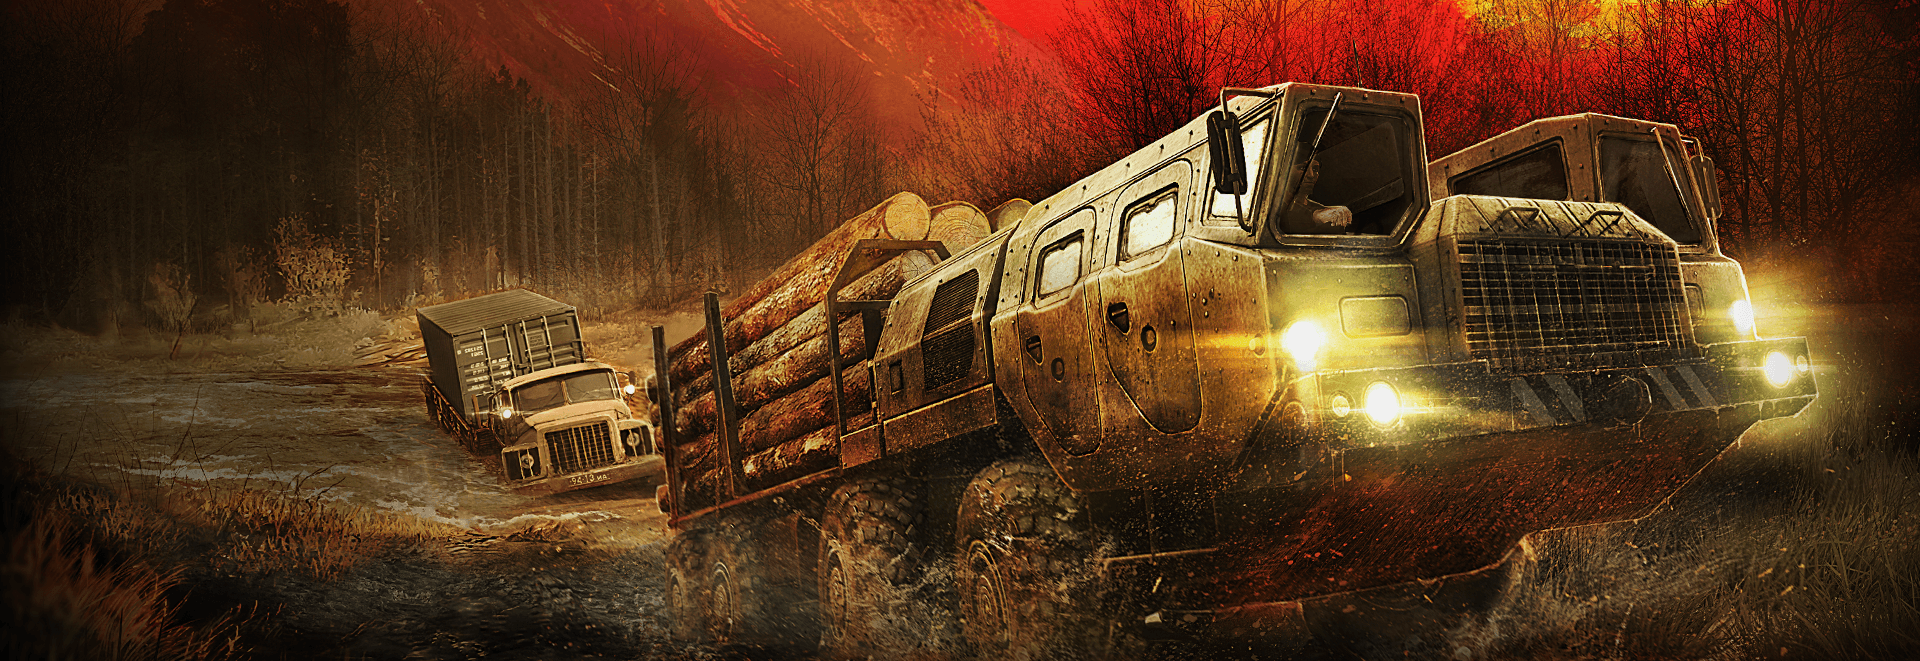 Spintires: MudRunner Feature Image